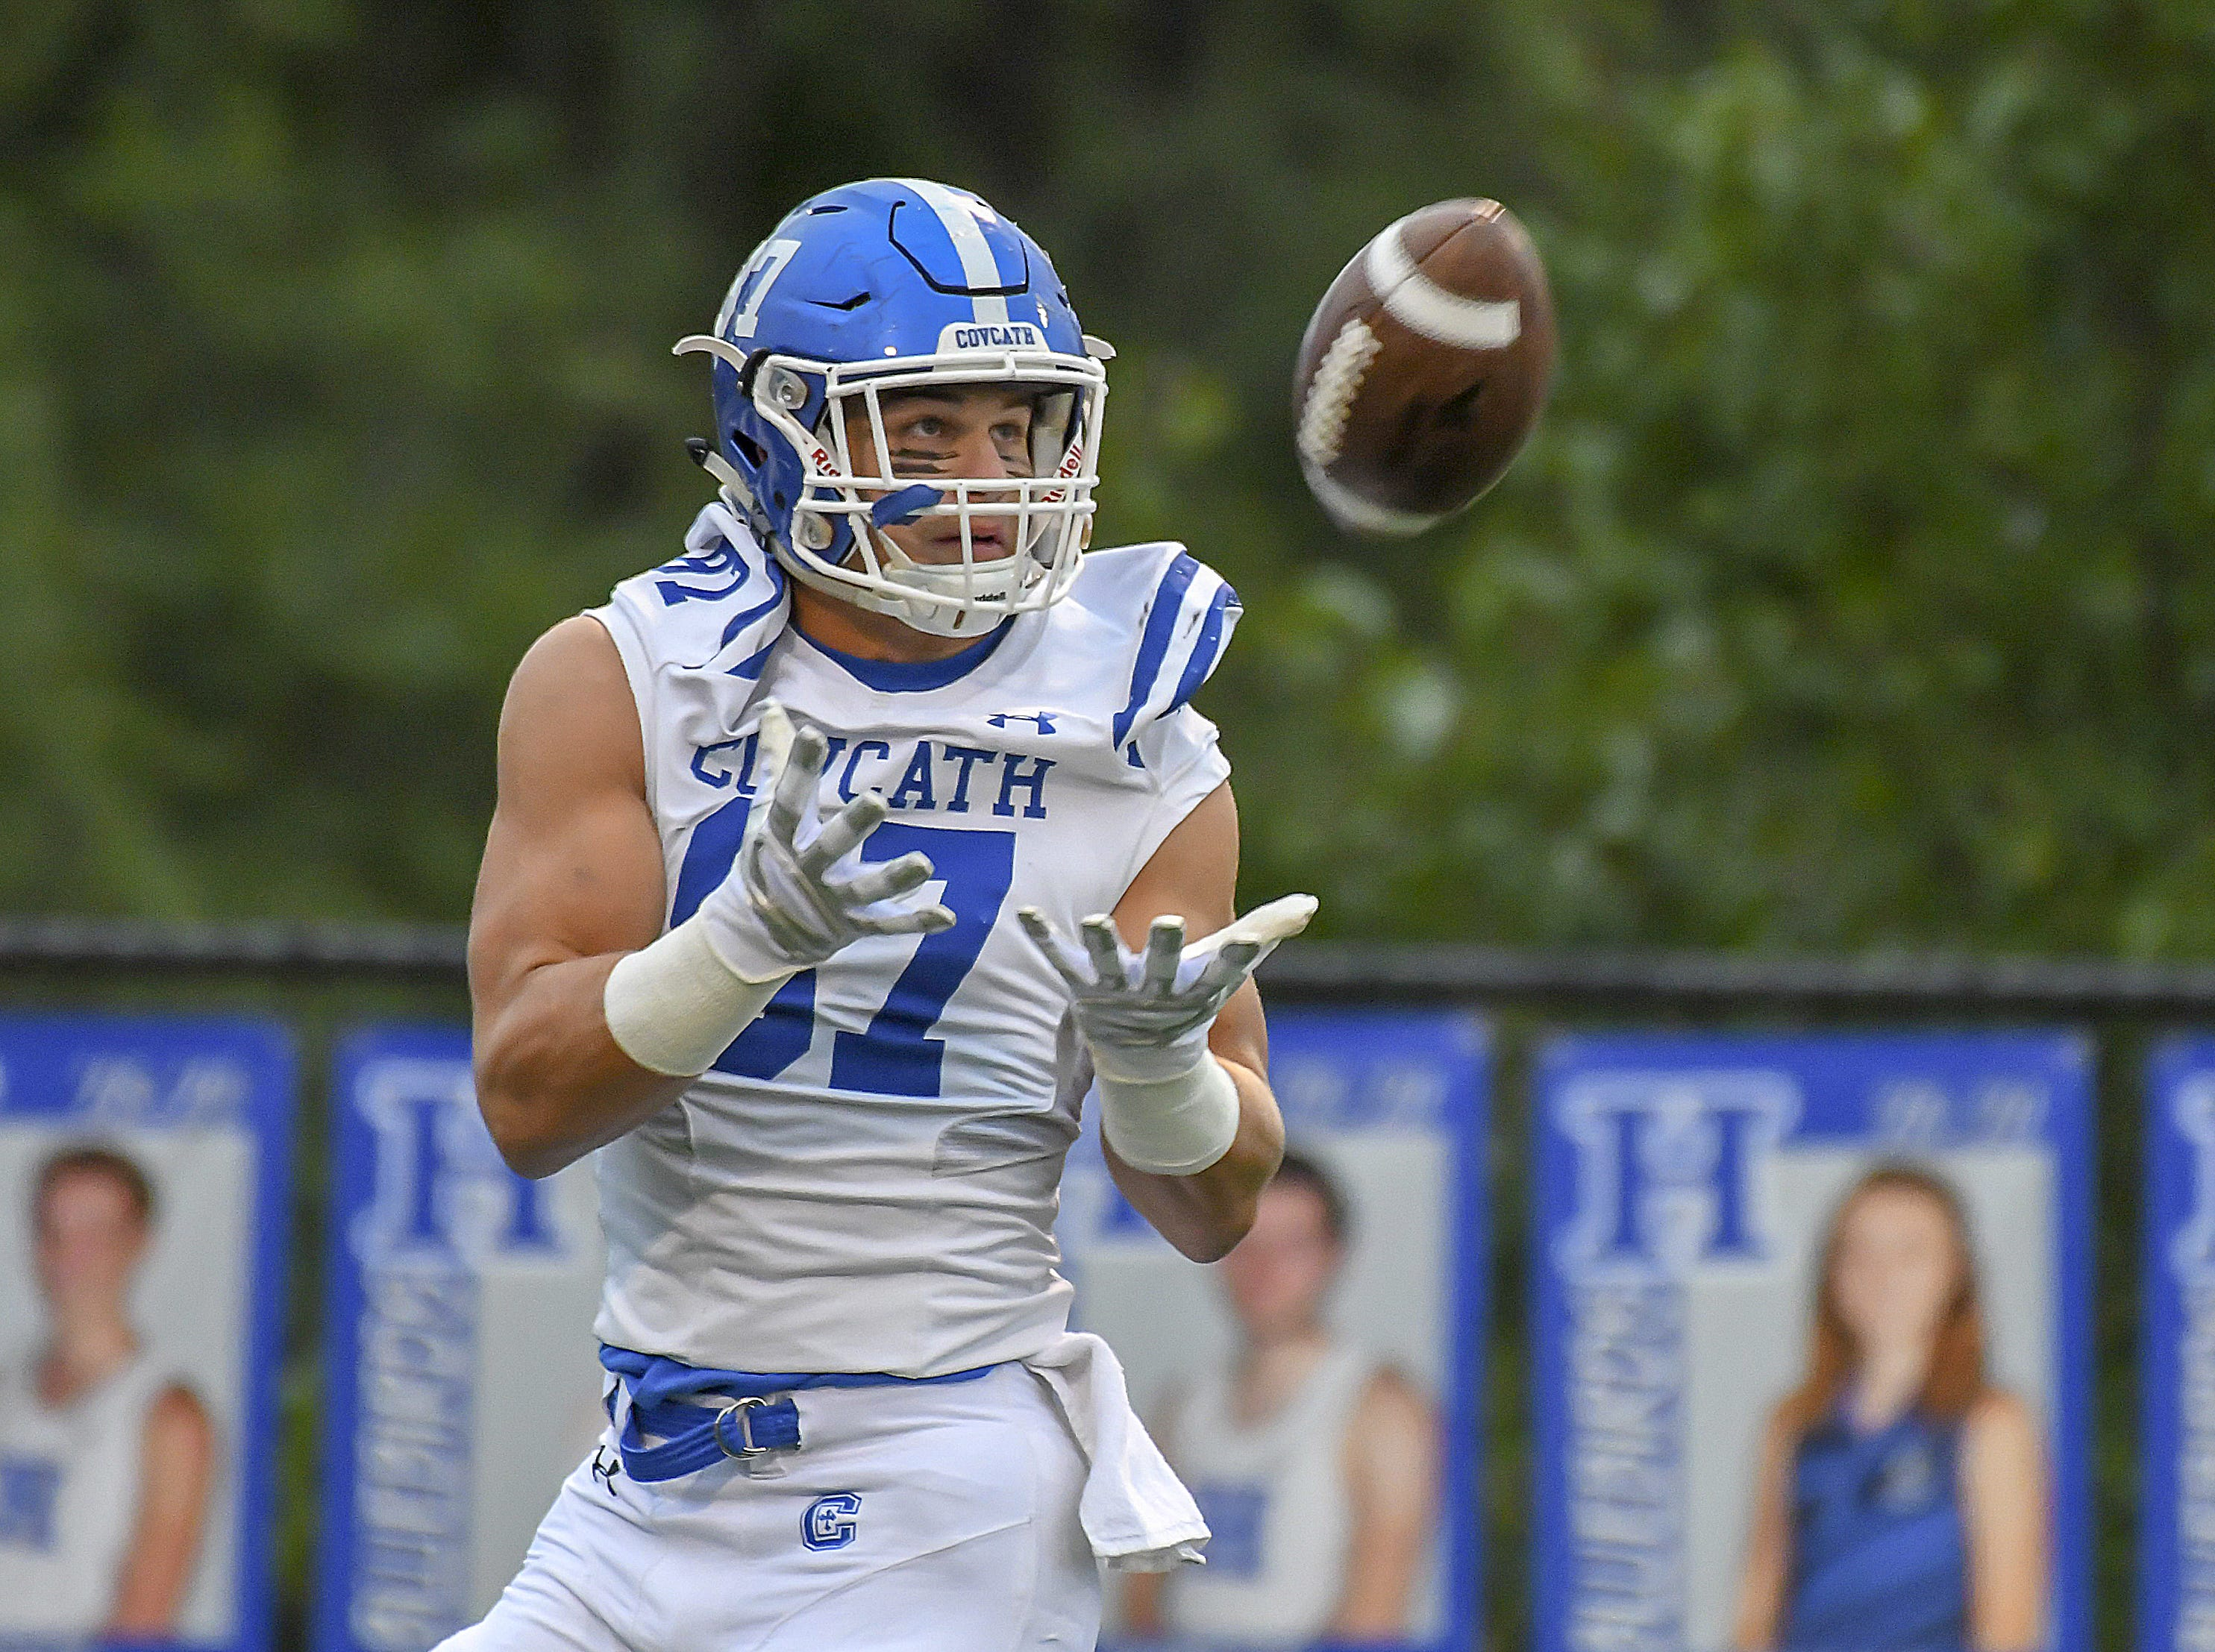 Michael Mayer of Covington Catholic warms up before their game against Highlands, Friday October 12, 2018